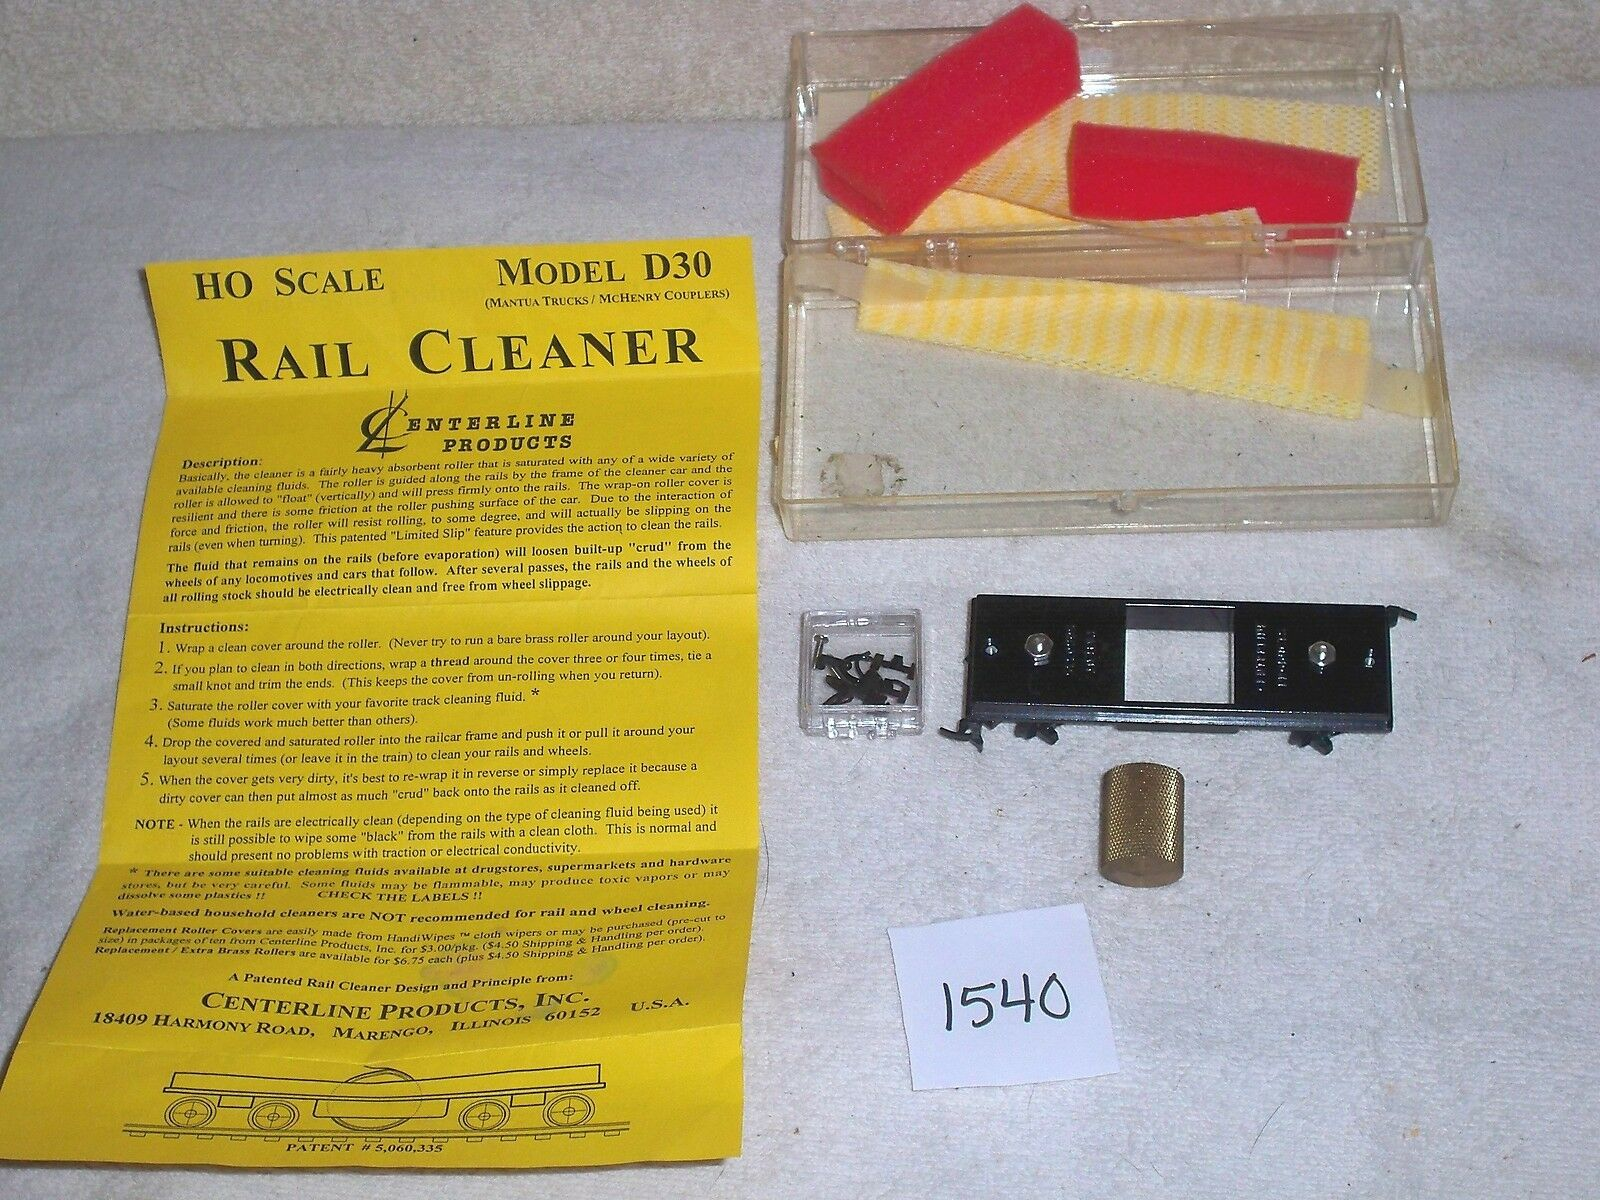 Centerline Products HO Scale Rail Cleaner Model D30